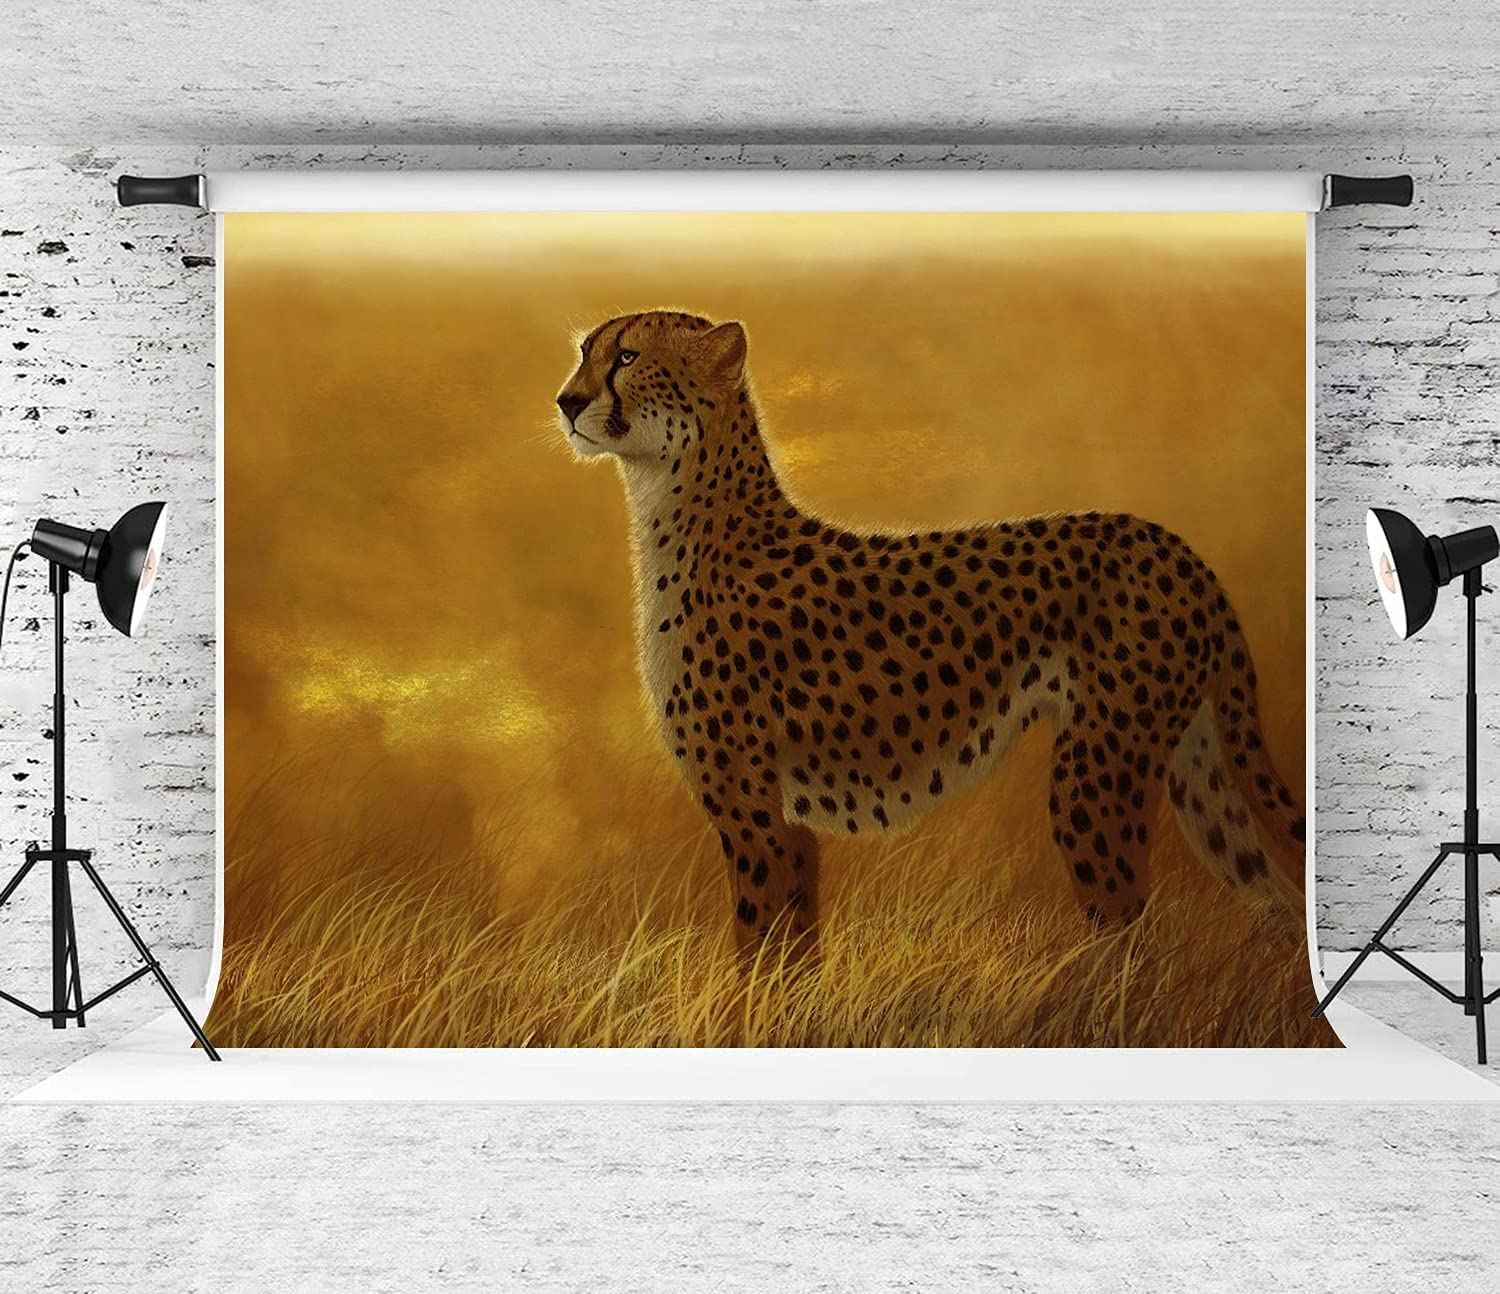 ZOANEN Photography Free shipping anywhere in the nation Background A Cheetah Savannah The on National products African